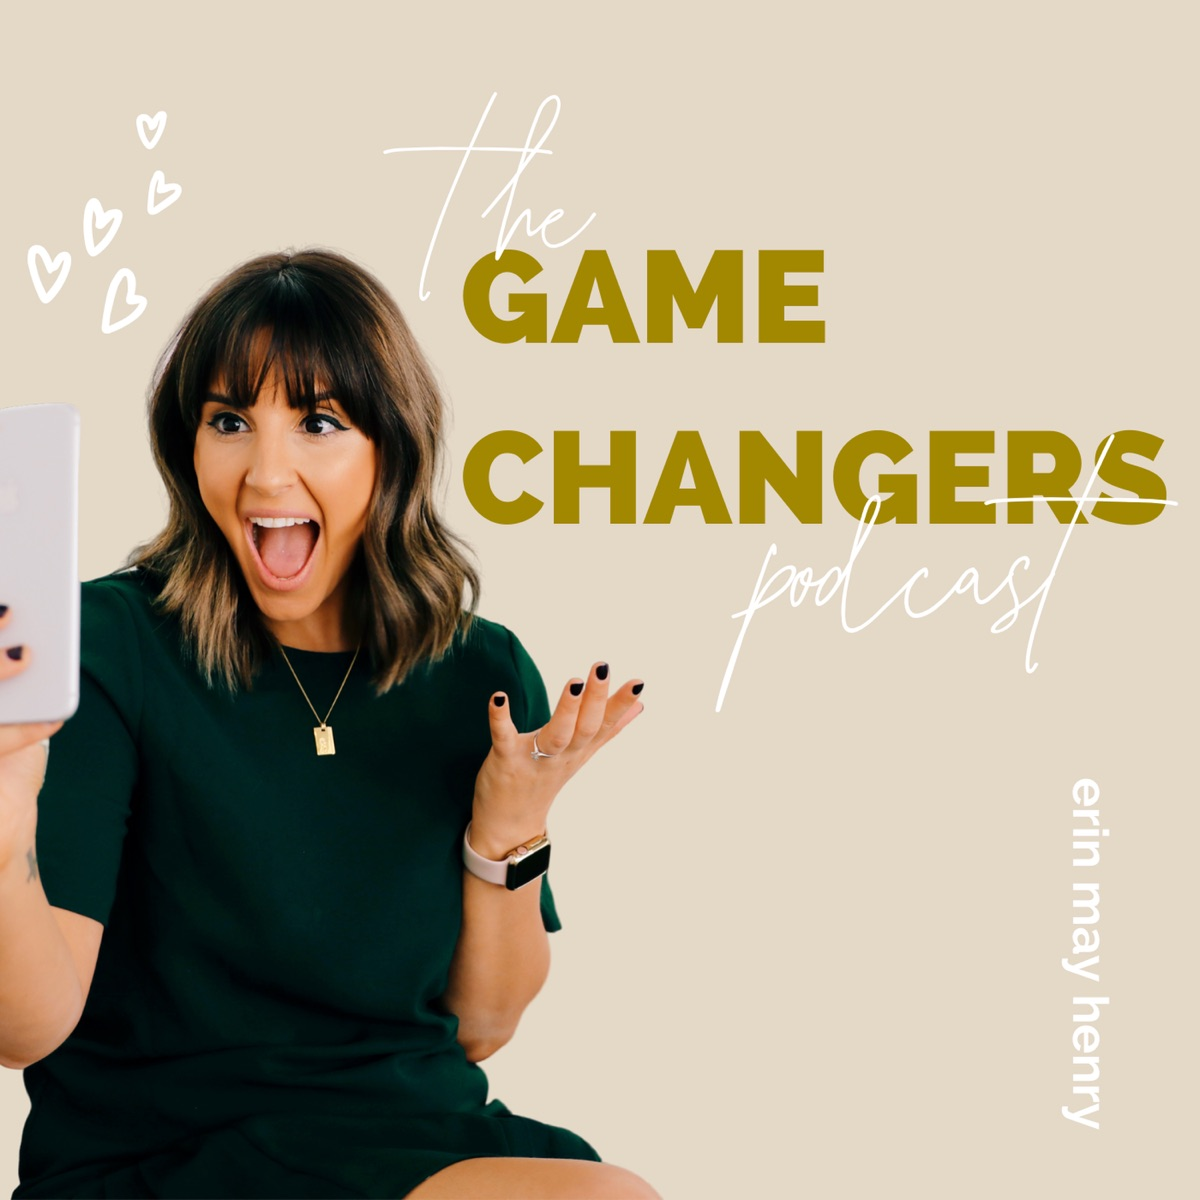 Game Changers | Personal Branding and Business Advice